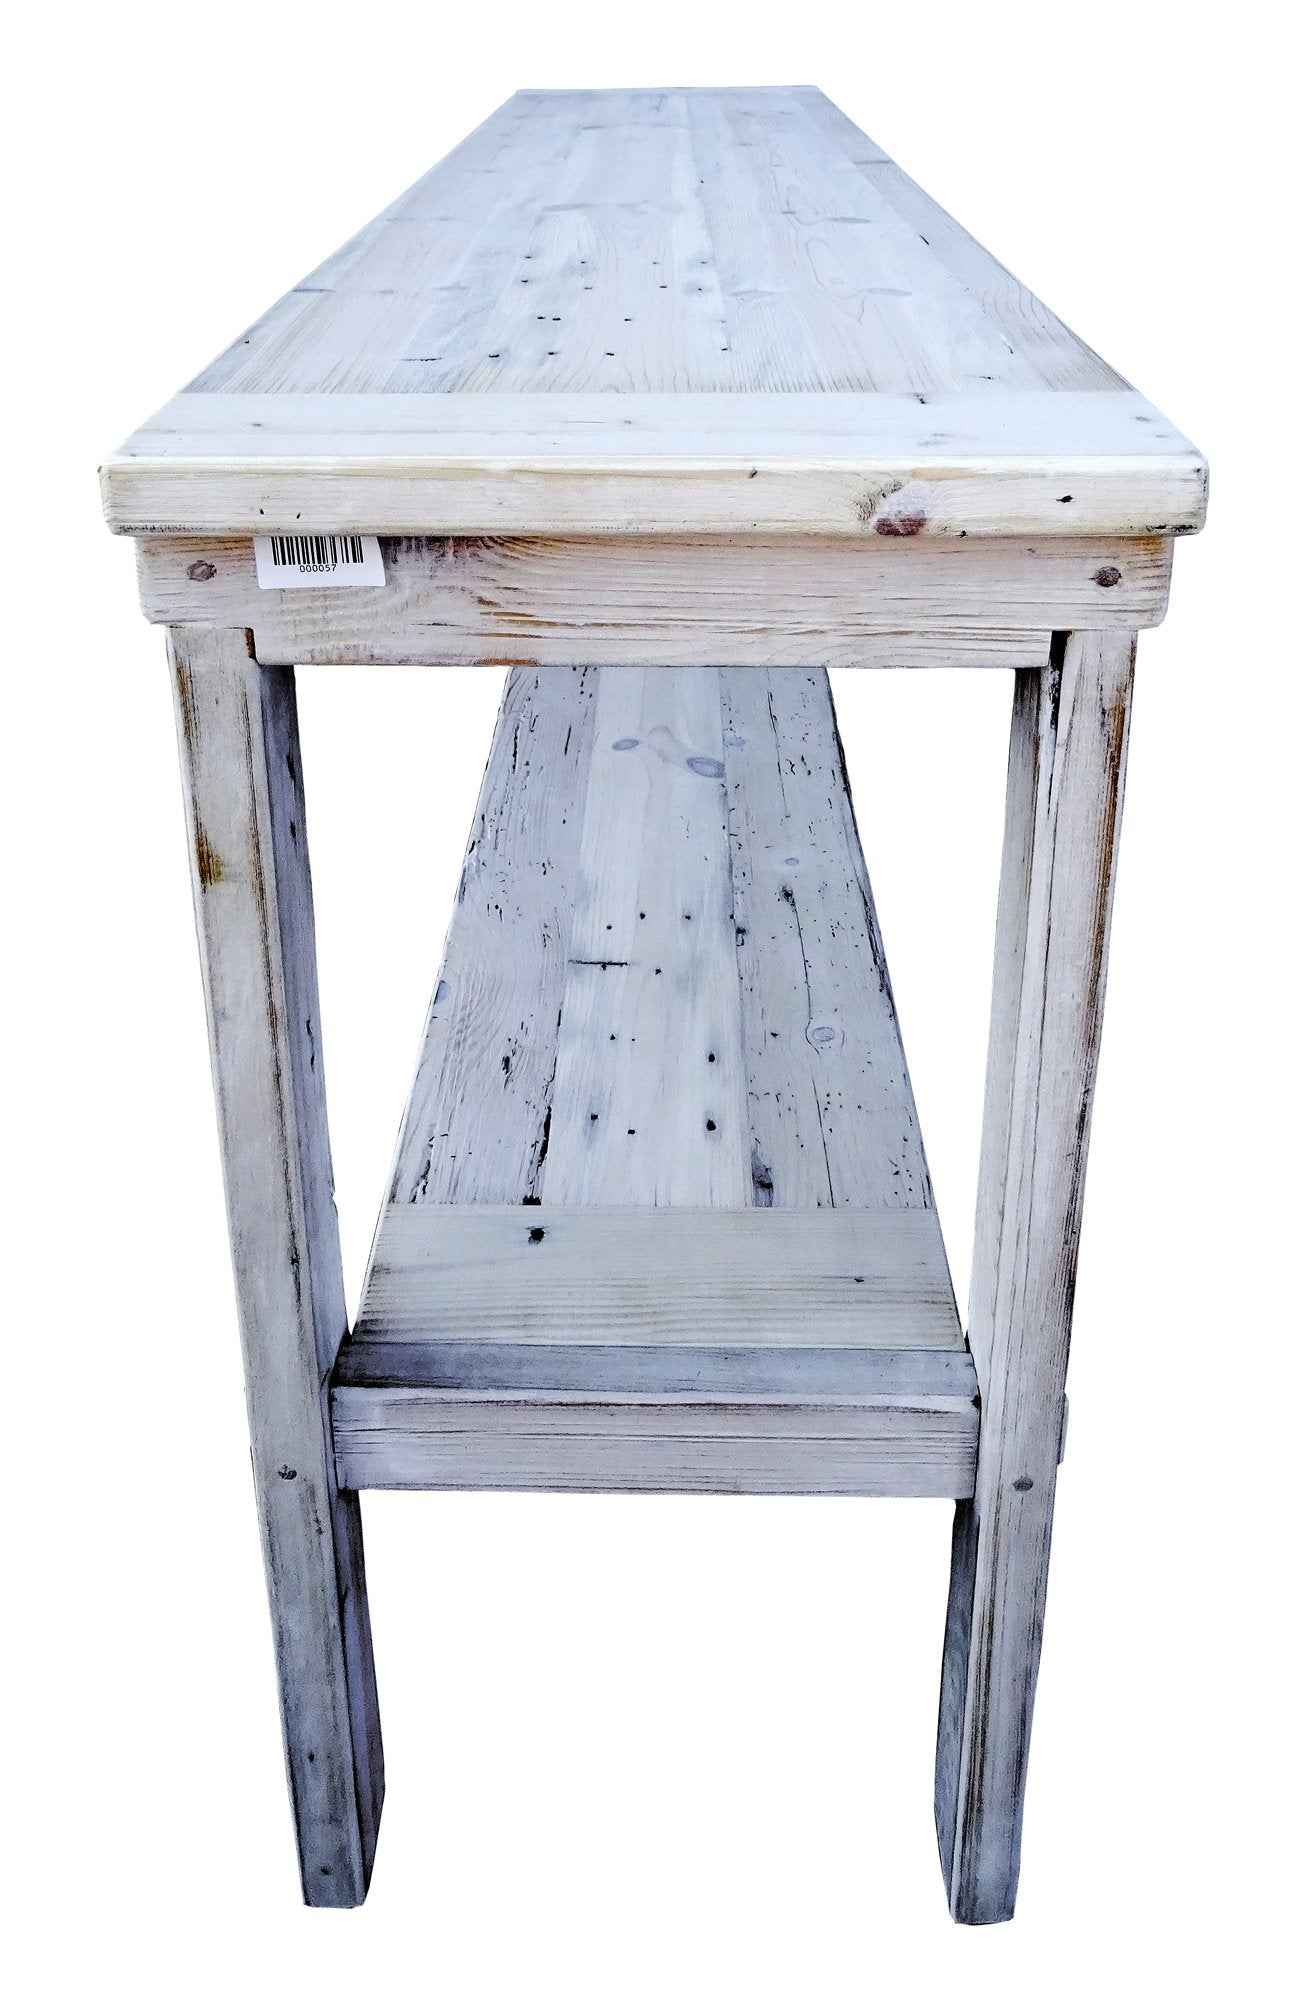 distressed white washed furniture. Reclaimed Wood Sofa Table Whitewashed Rustic Shabby Shic Distressed White Washed Furniture A